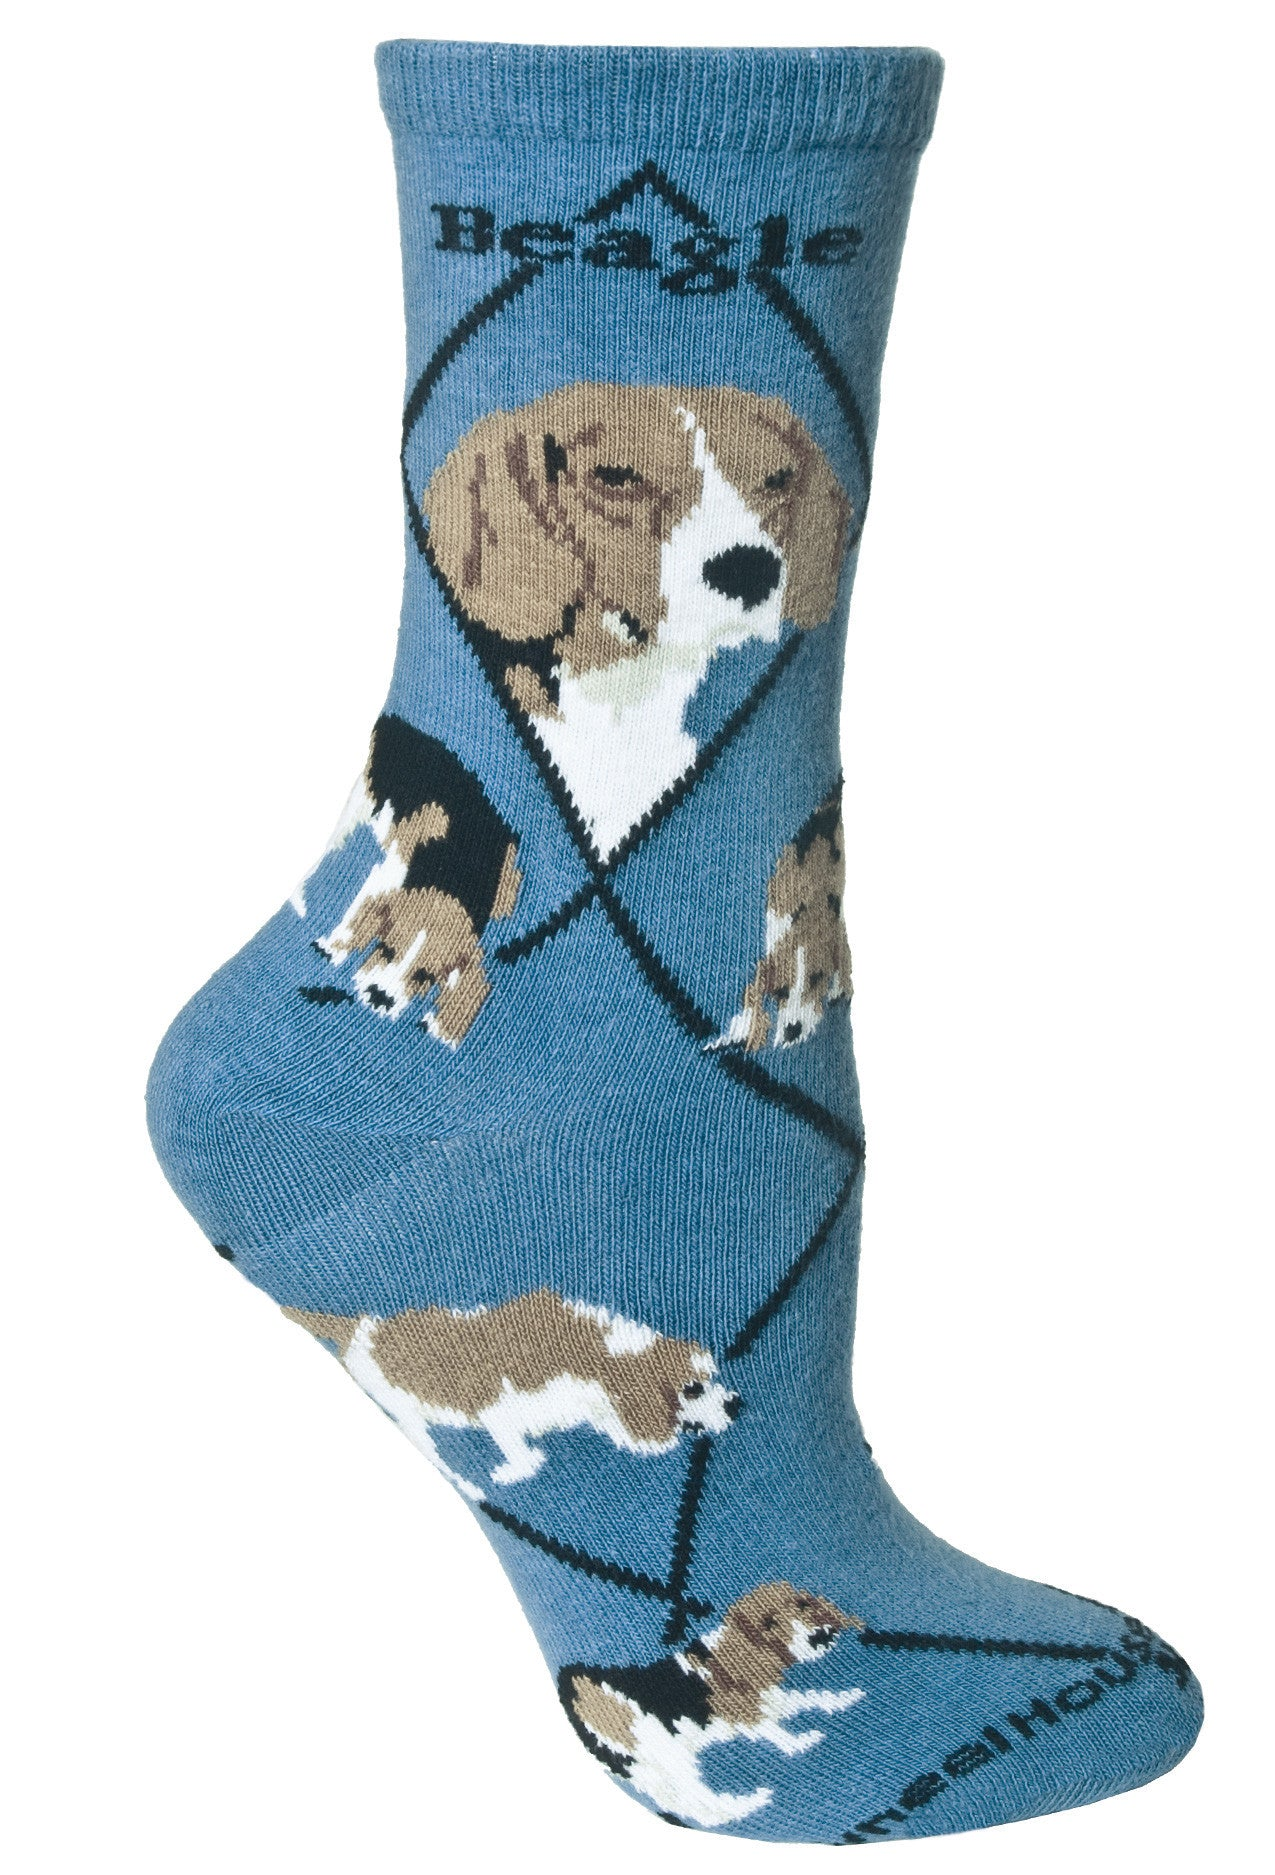 Beagle on Blue Socks